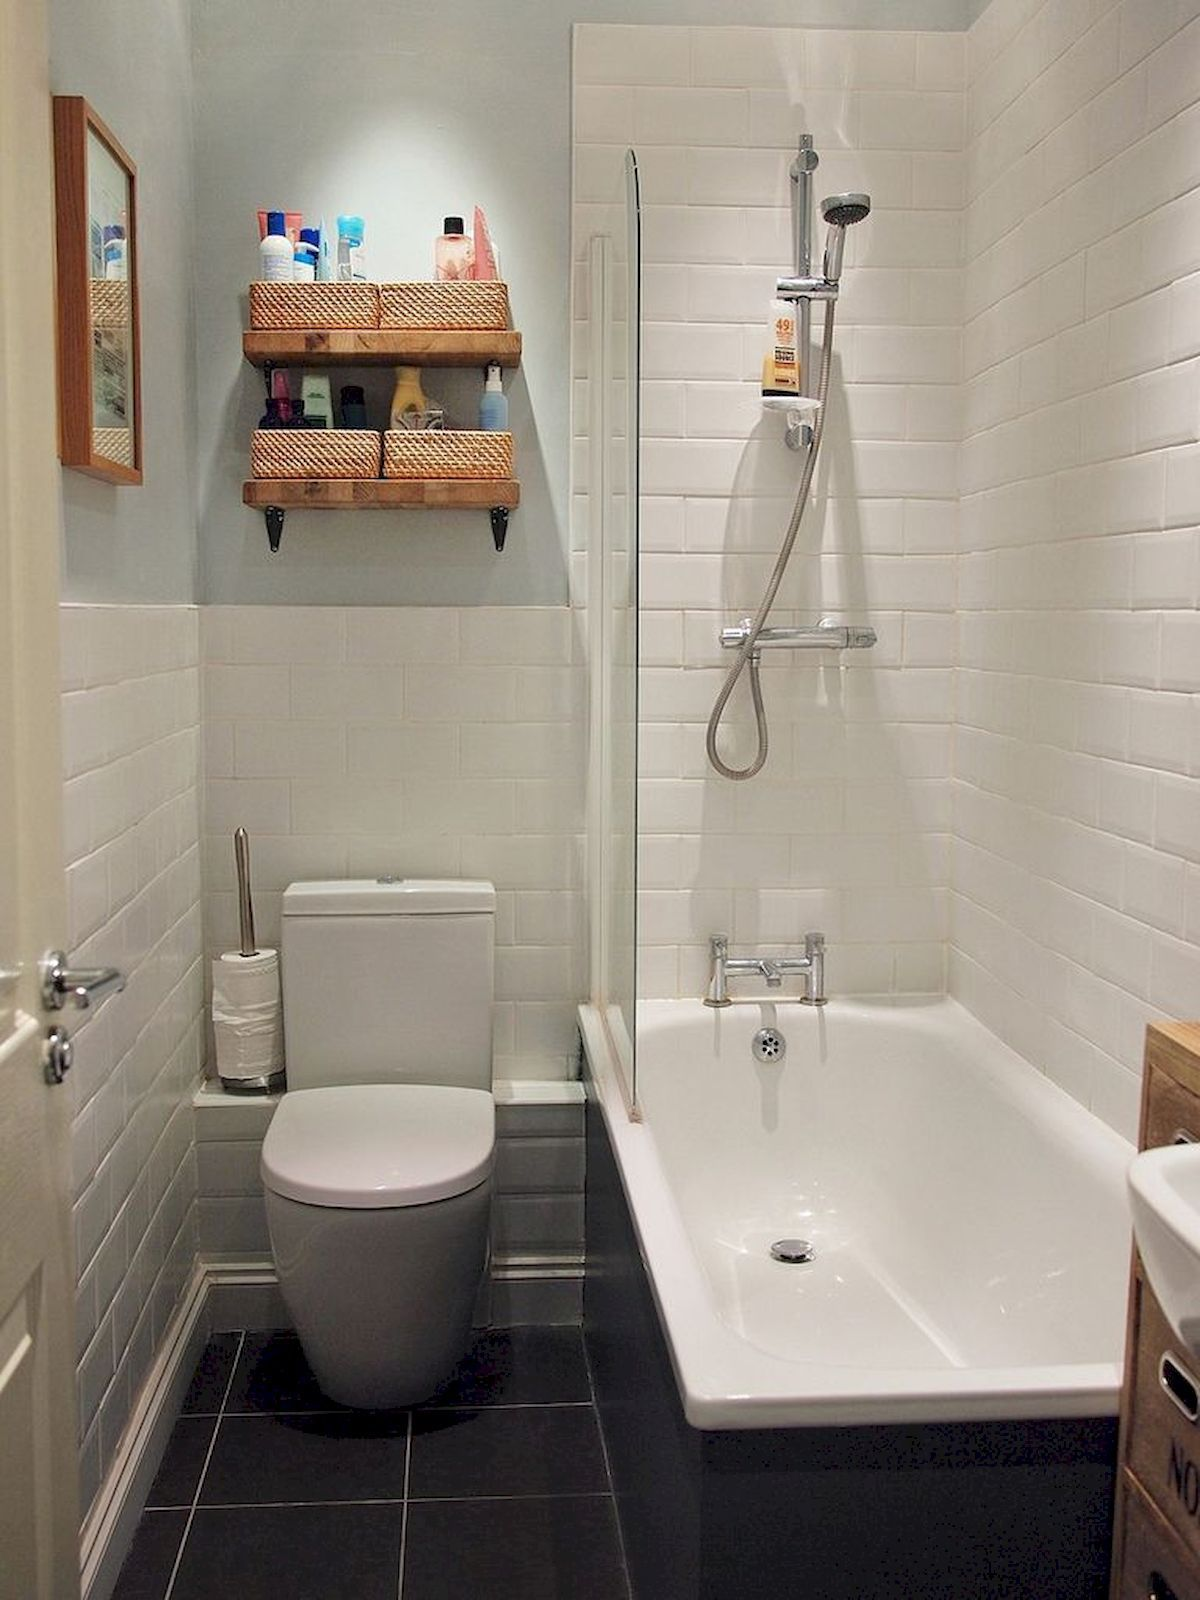 Cool 50 Small Guest Bathroom Ideas Decorations And Remodel Httpsroomadnesscom